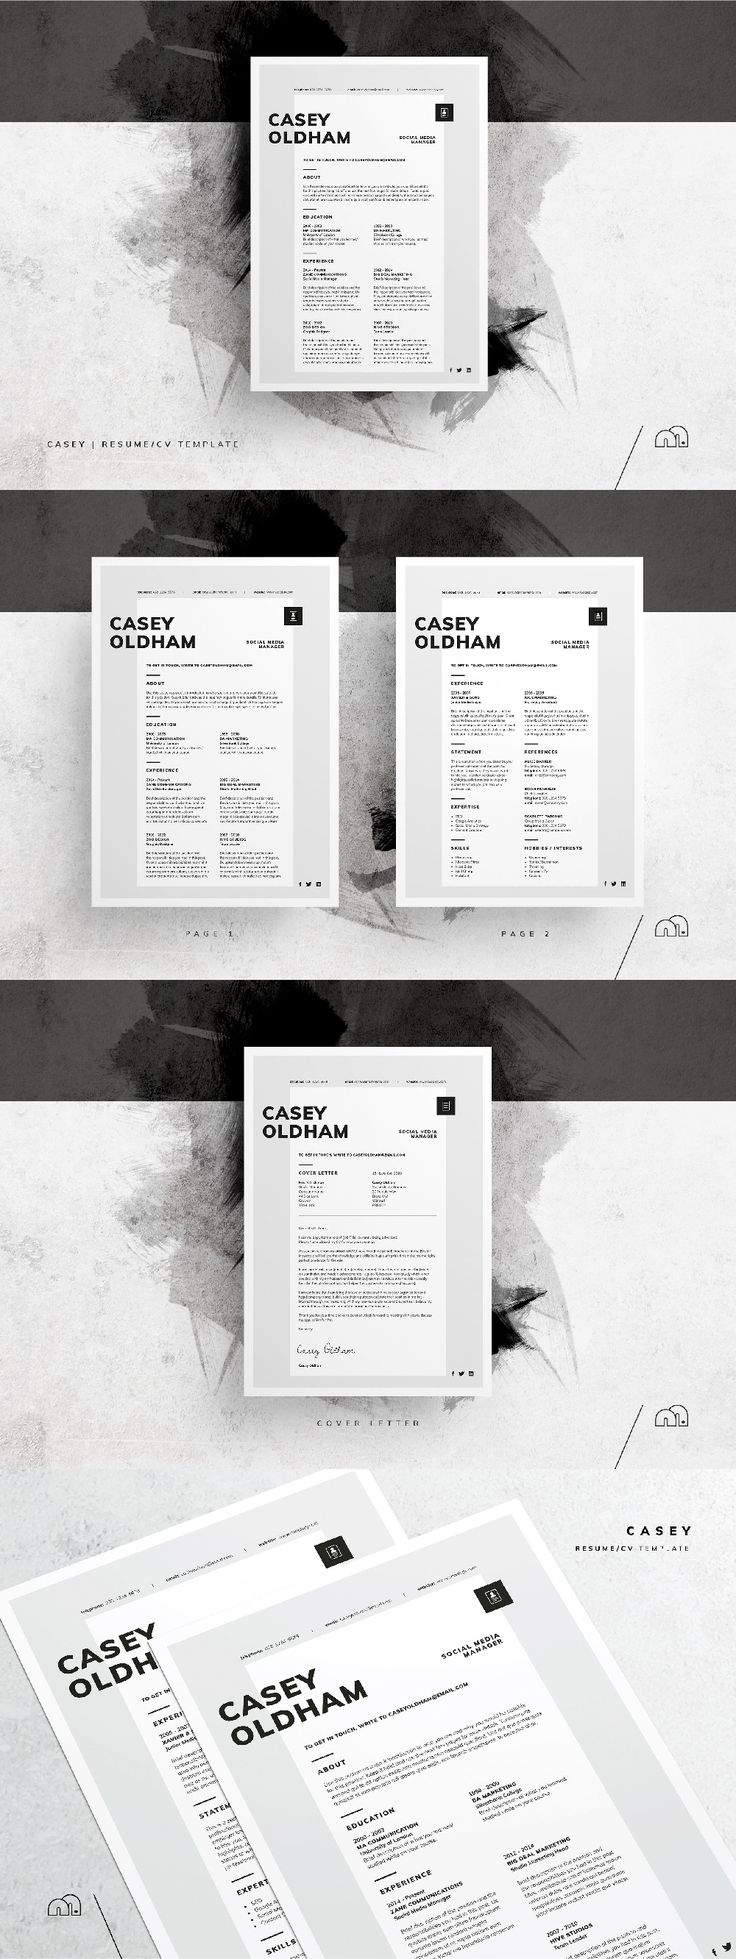 cover letter for sales manager position%0A Resume   CV Template  Casey For those looking for a professional template    u    Casey